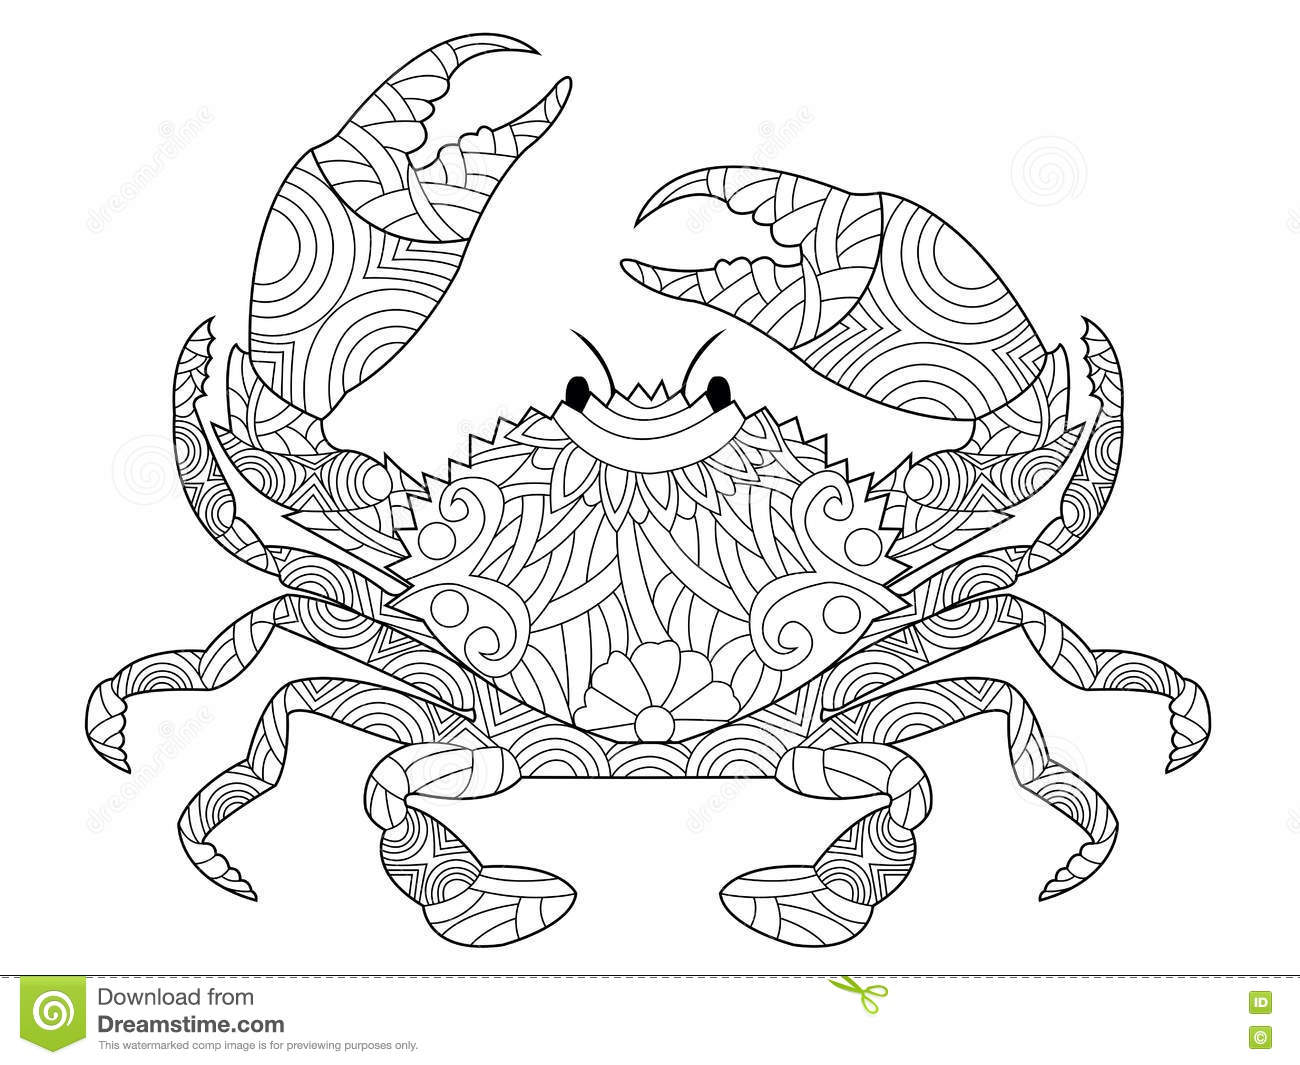 Crab Adult Coloring Coloring Pages